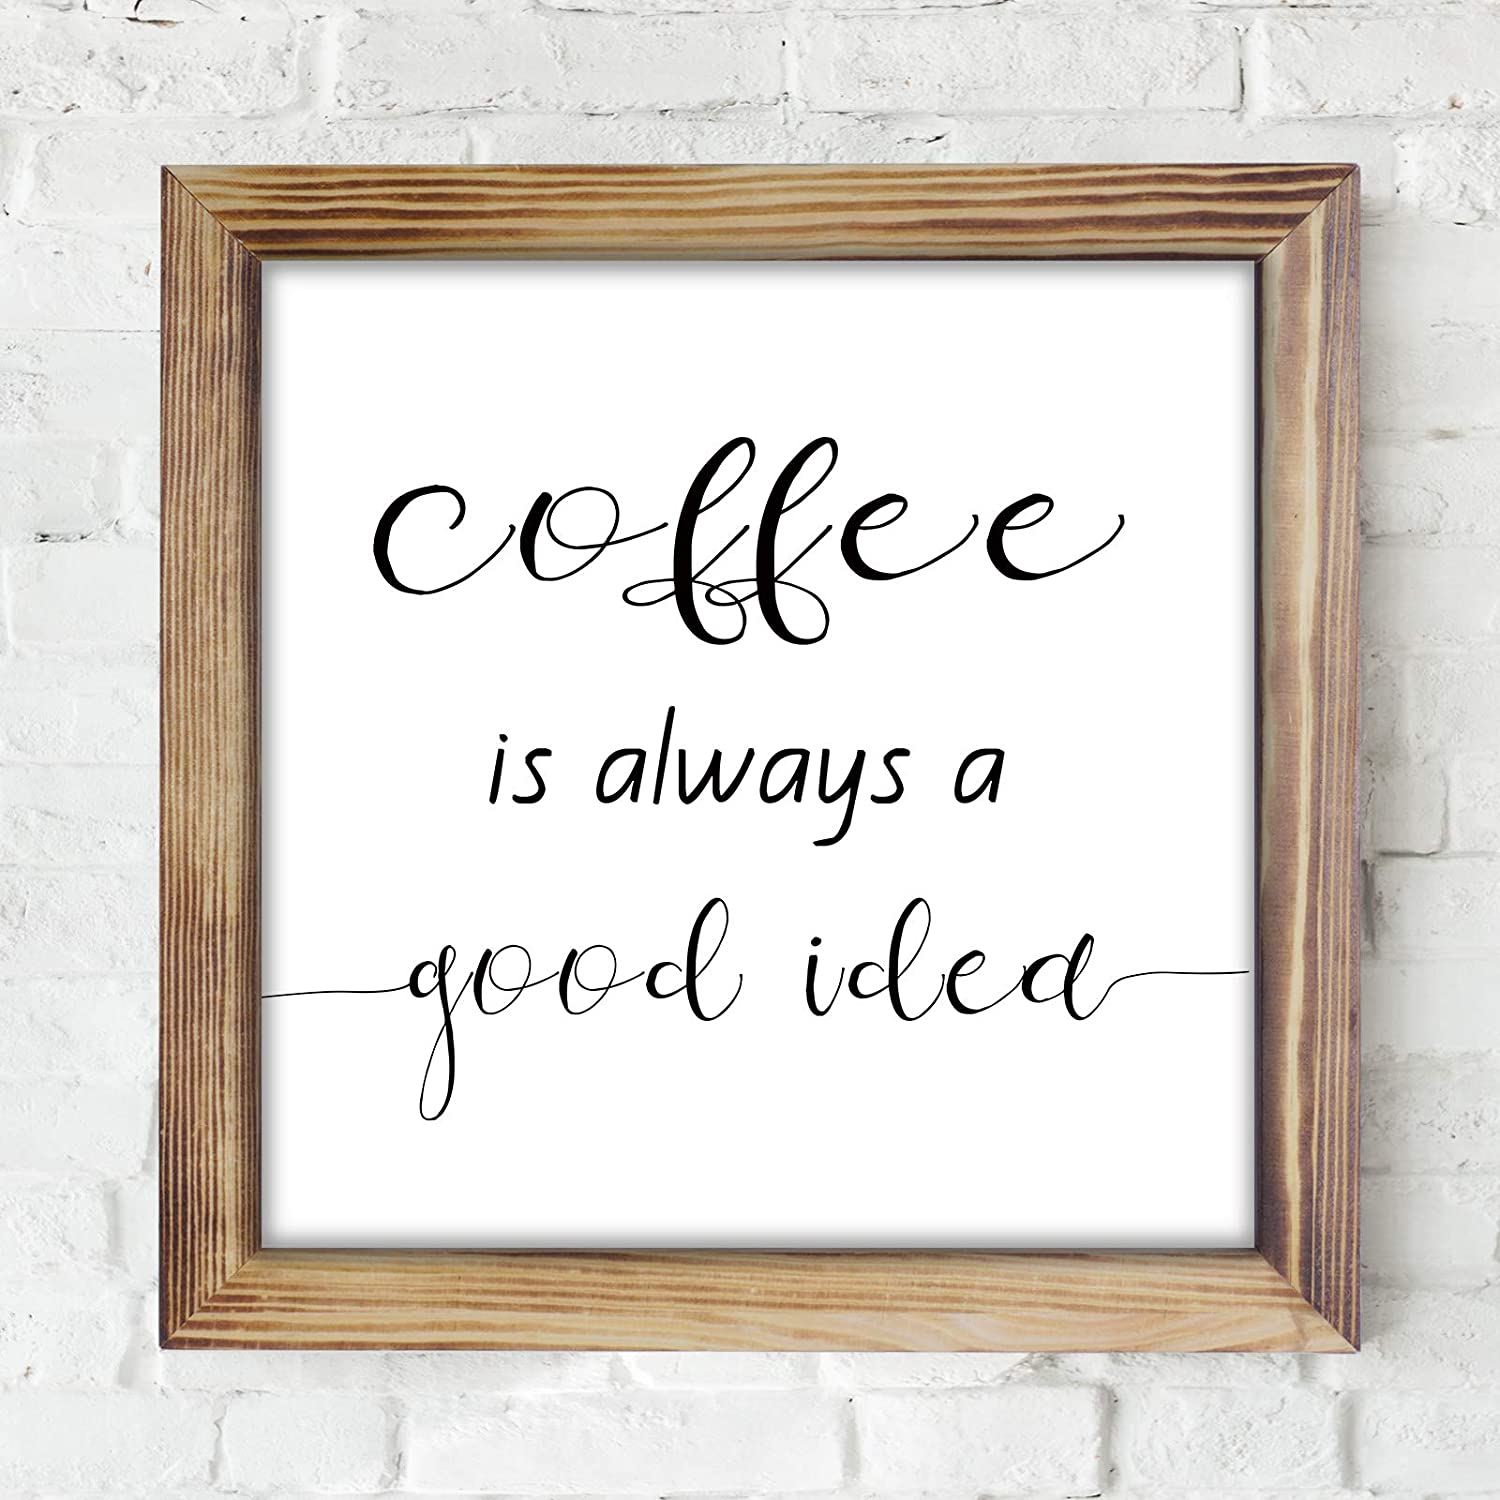 Coffee is Always A Good Idea Sign - Funny Kitchen Sign, Modern Farmhouse Kitchen Decor, Kitchen Wall Decor, Rustic Home Decor, Country Kitchen Decor with Solid Wood Frame 12x12 Inch